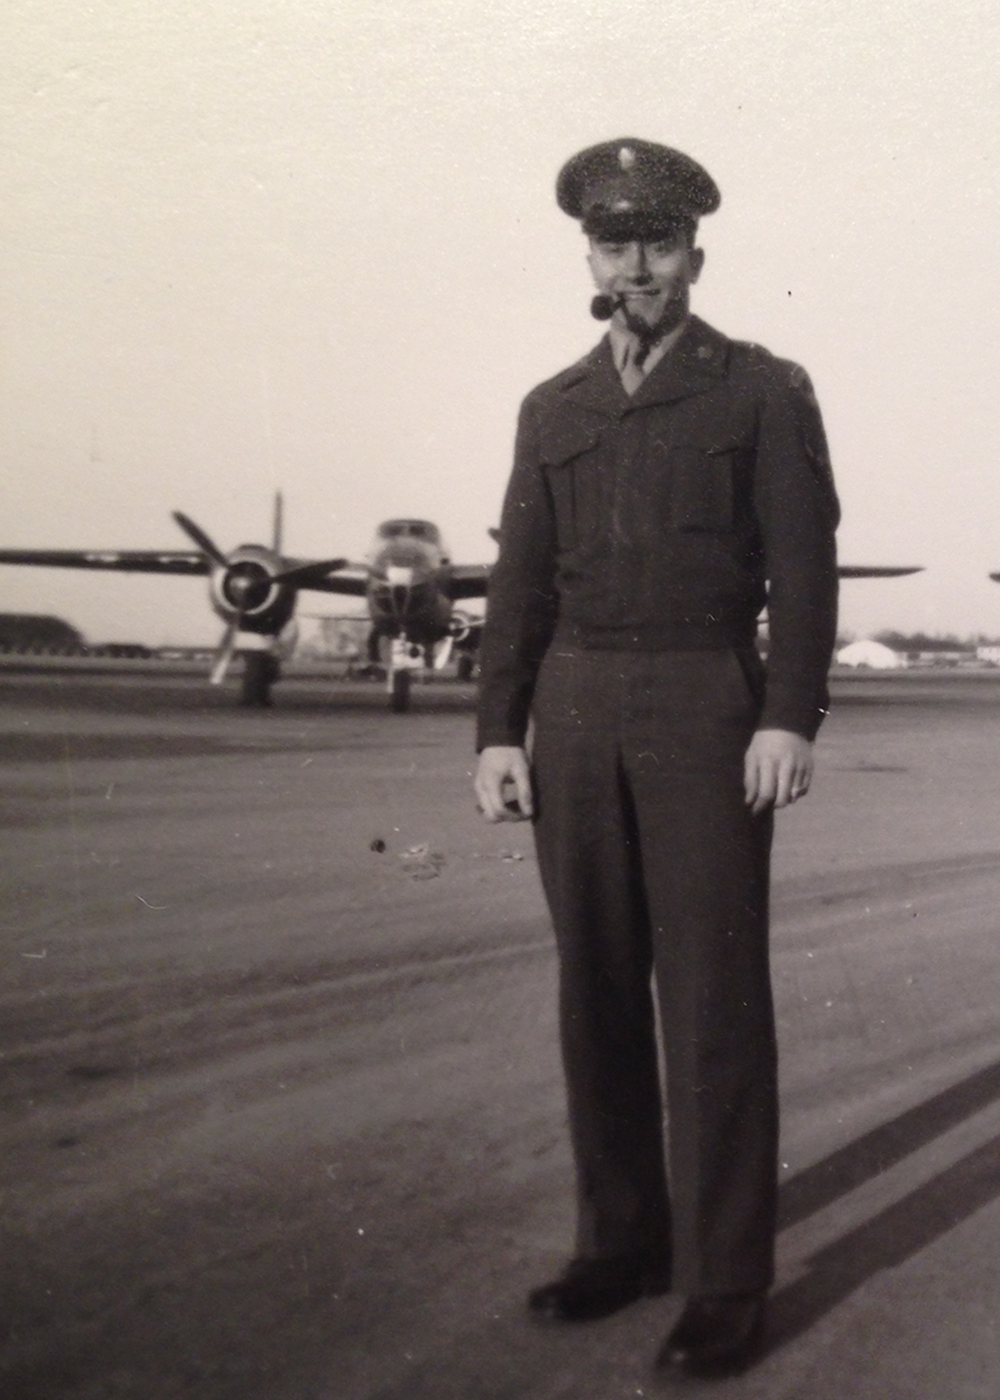 Joseph Sant'Angelo poses for a photo at Chanute Air Force Base, where he was base photographer. (Image courtesy of Joseph Sant'Angelo and the Department of Chemical and Biomolecular Engineering.)